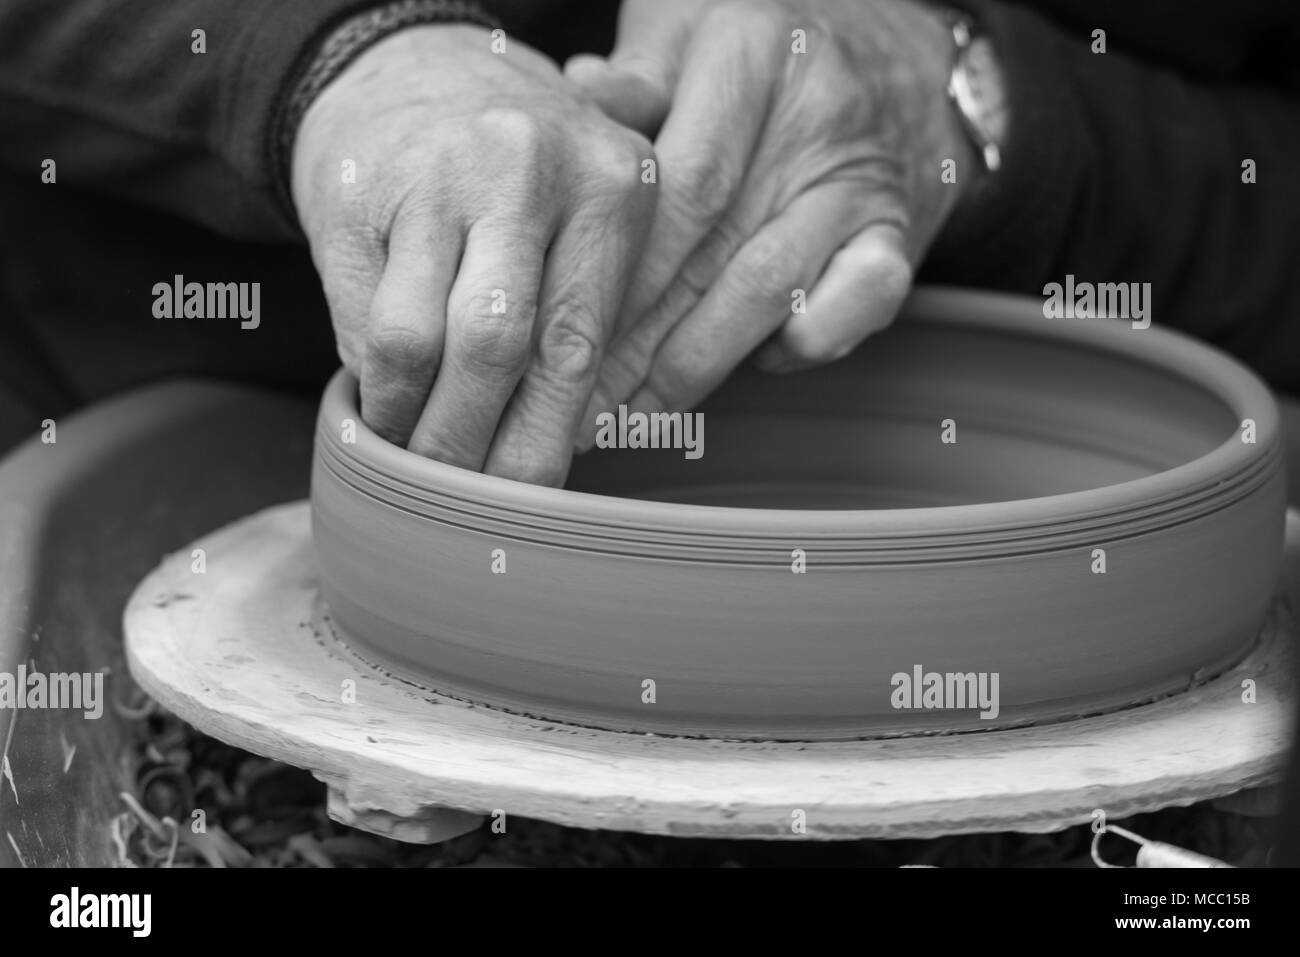 artisan potter makes earthenware pot on wheel using various tools - Stock Image